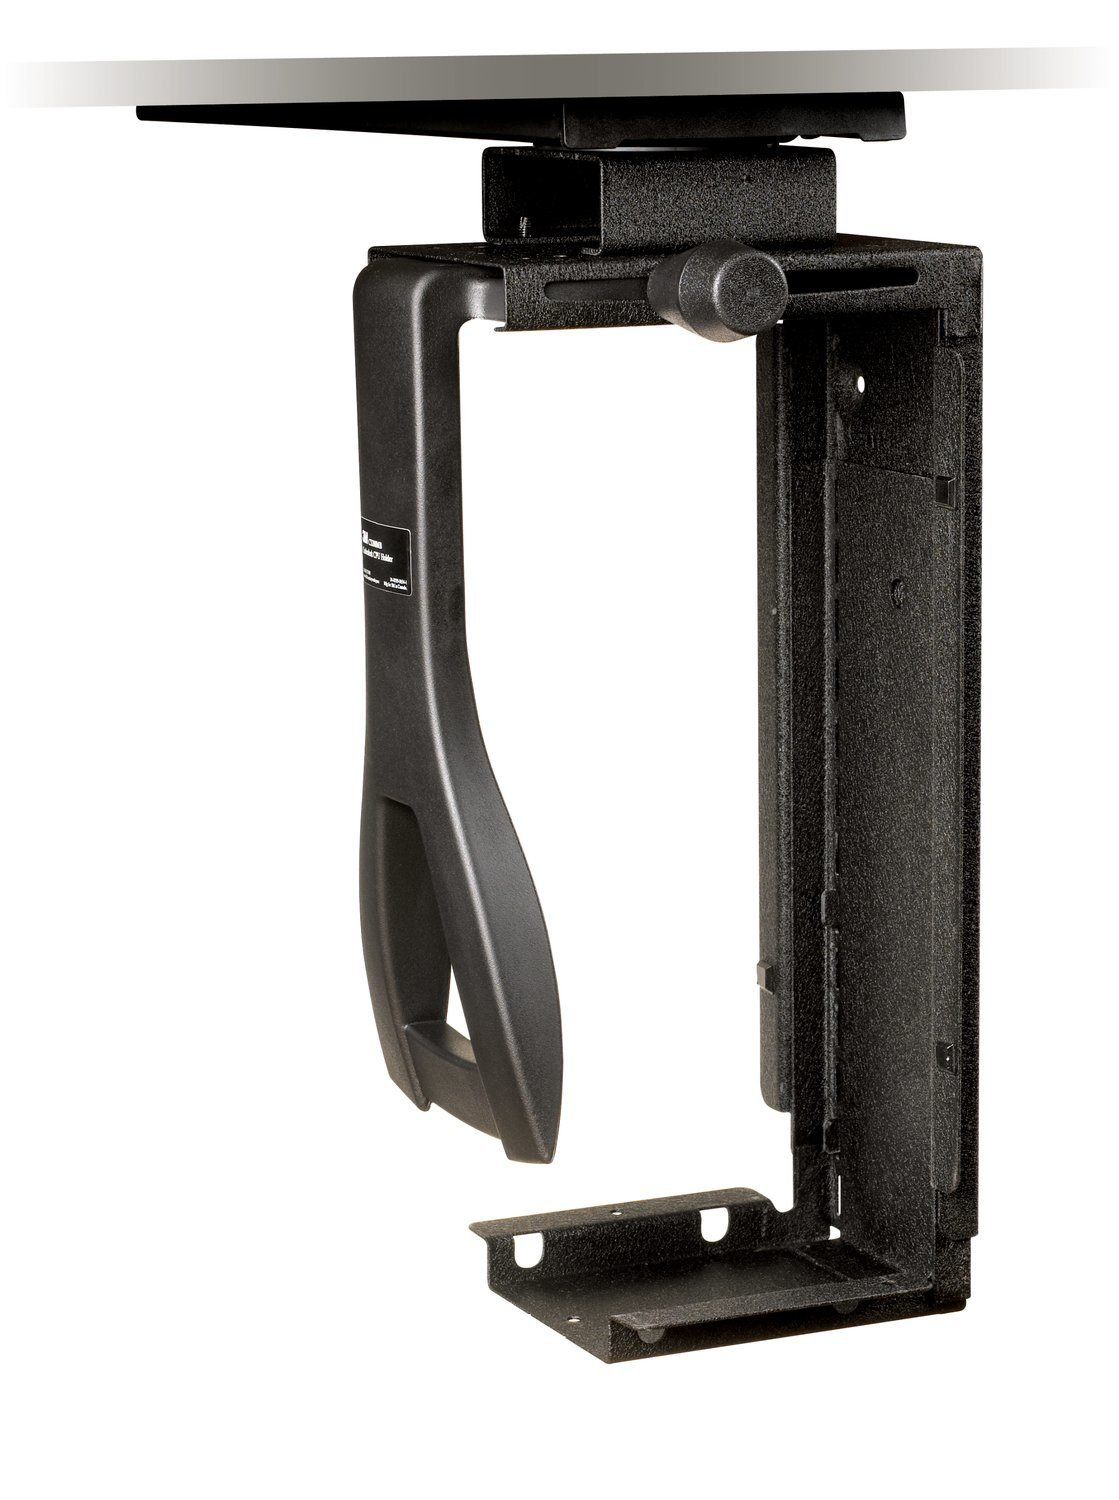 3M Under-desk CPU Holder, Width adjusts from 3.5'' to 9.3'' and height adjusts from 12.5'' to 22.5'' to fit most CPU's up to 50 lbs, 360⁰ Swivel, Steel Construction, 17'' Track, Black, (CS200MB)